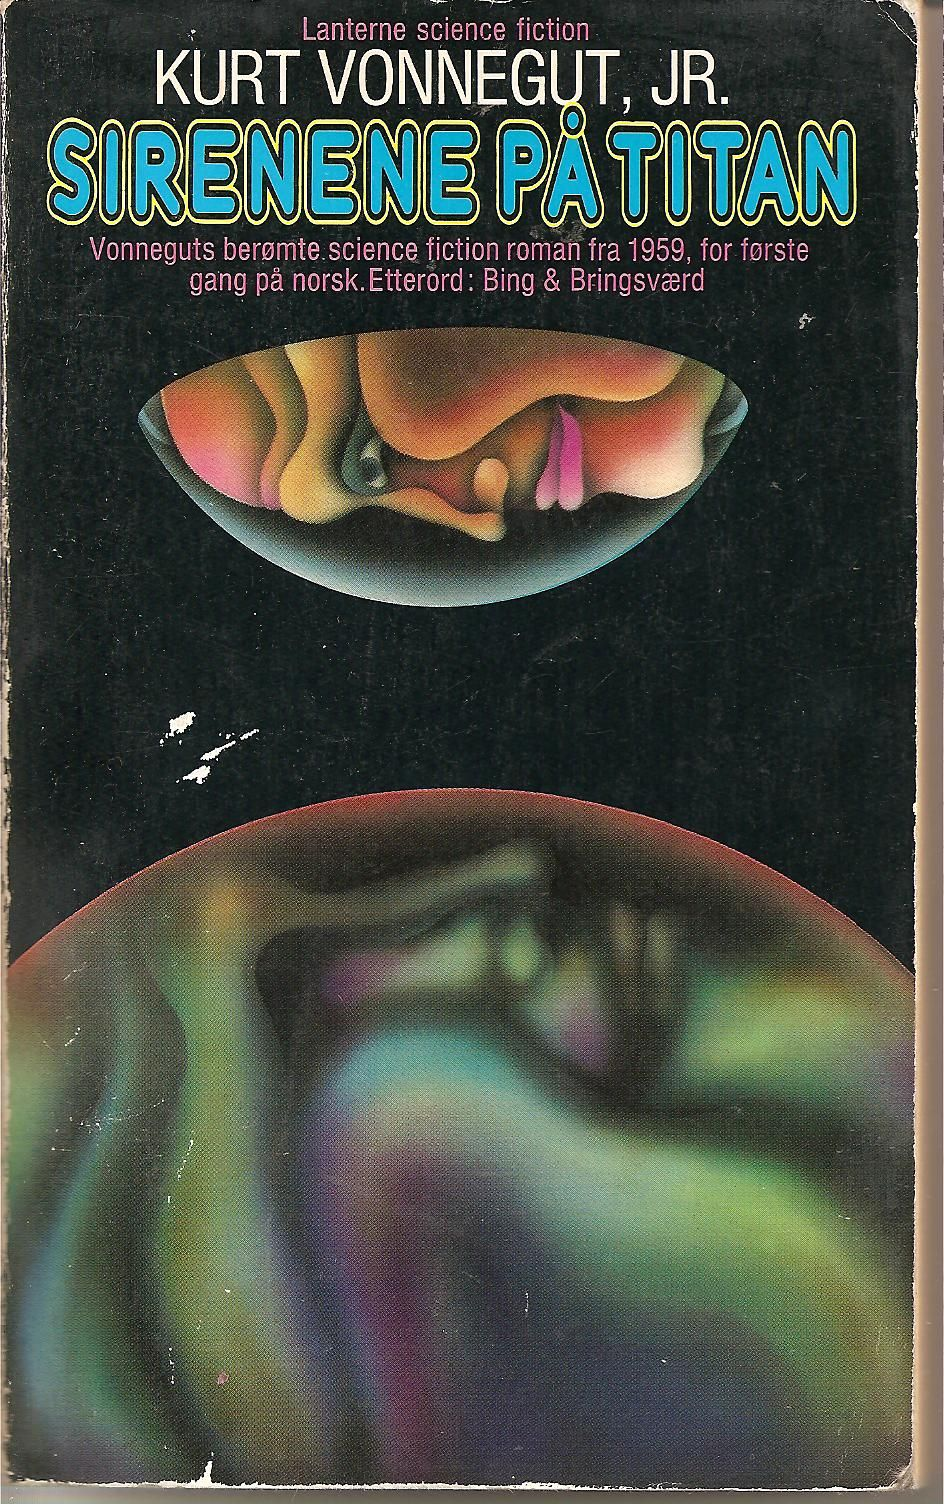 Amazing Psychedelic Vintage Norwegian Sci-Fi Book Covers